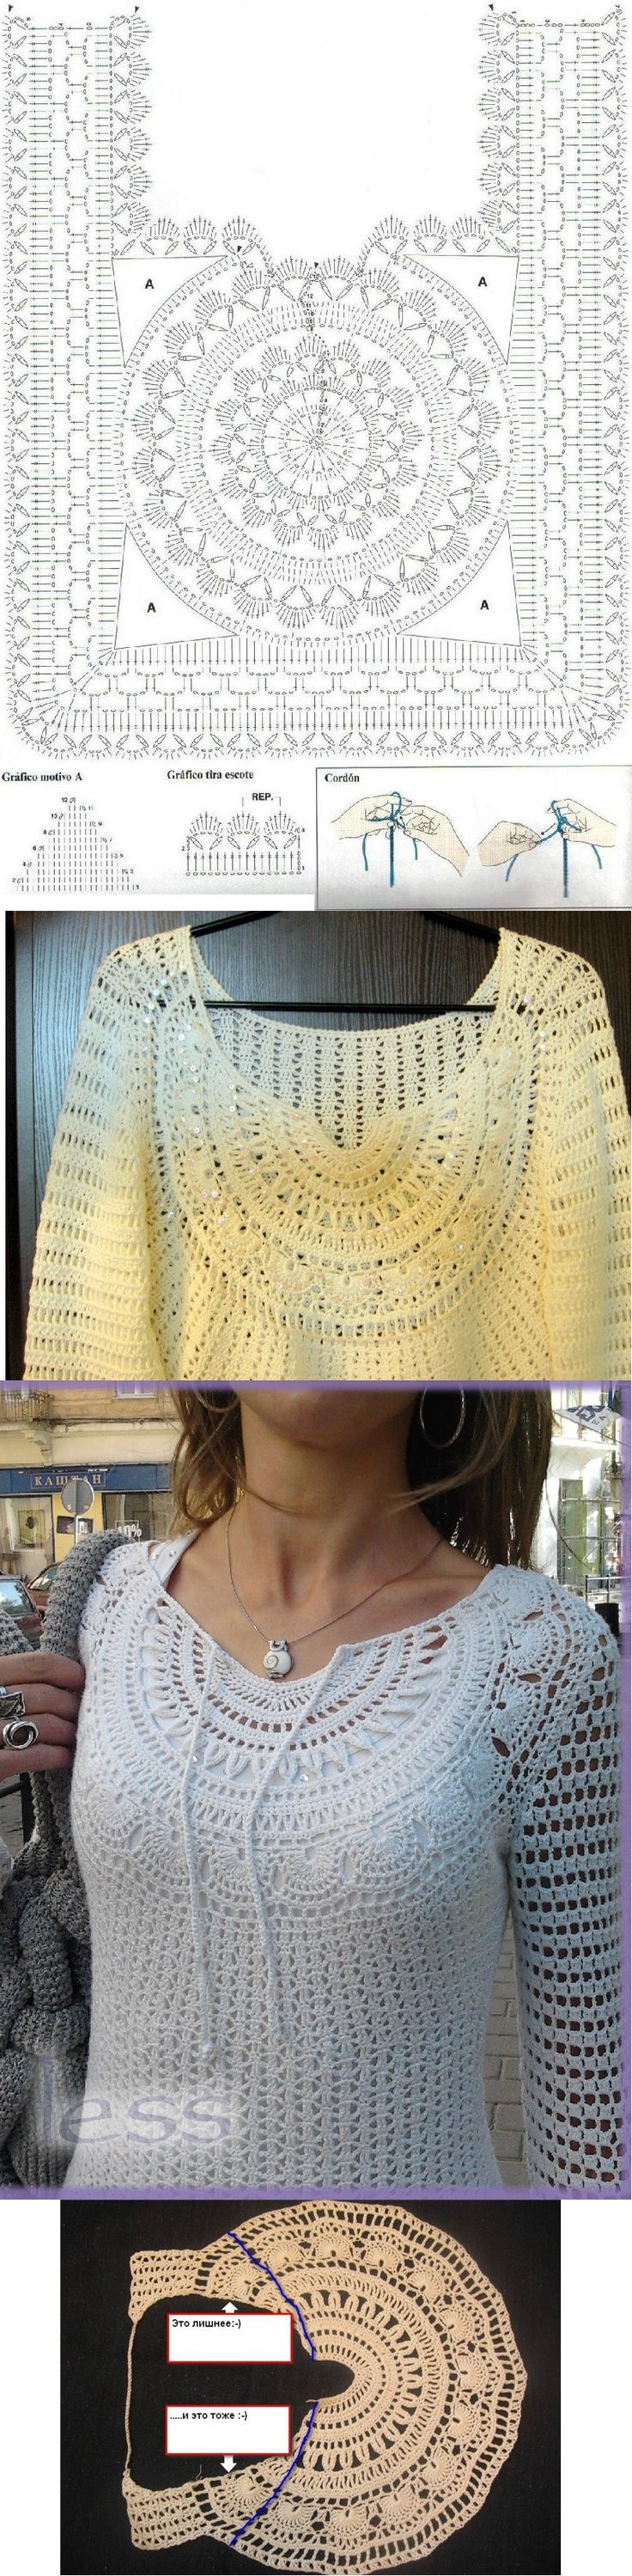 Crochet tops with charts                                                                                                                                                      Más